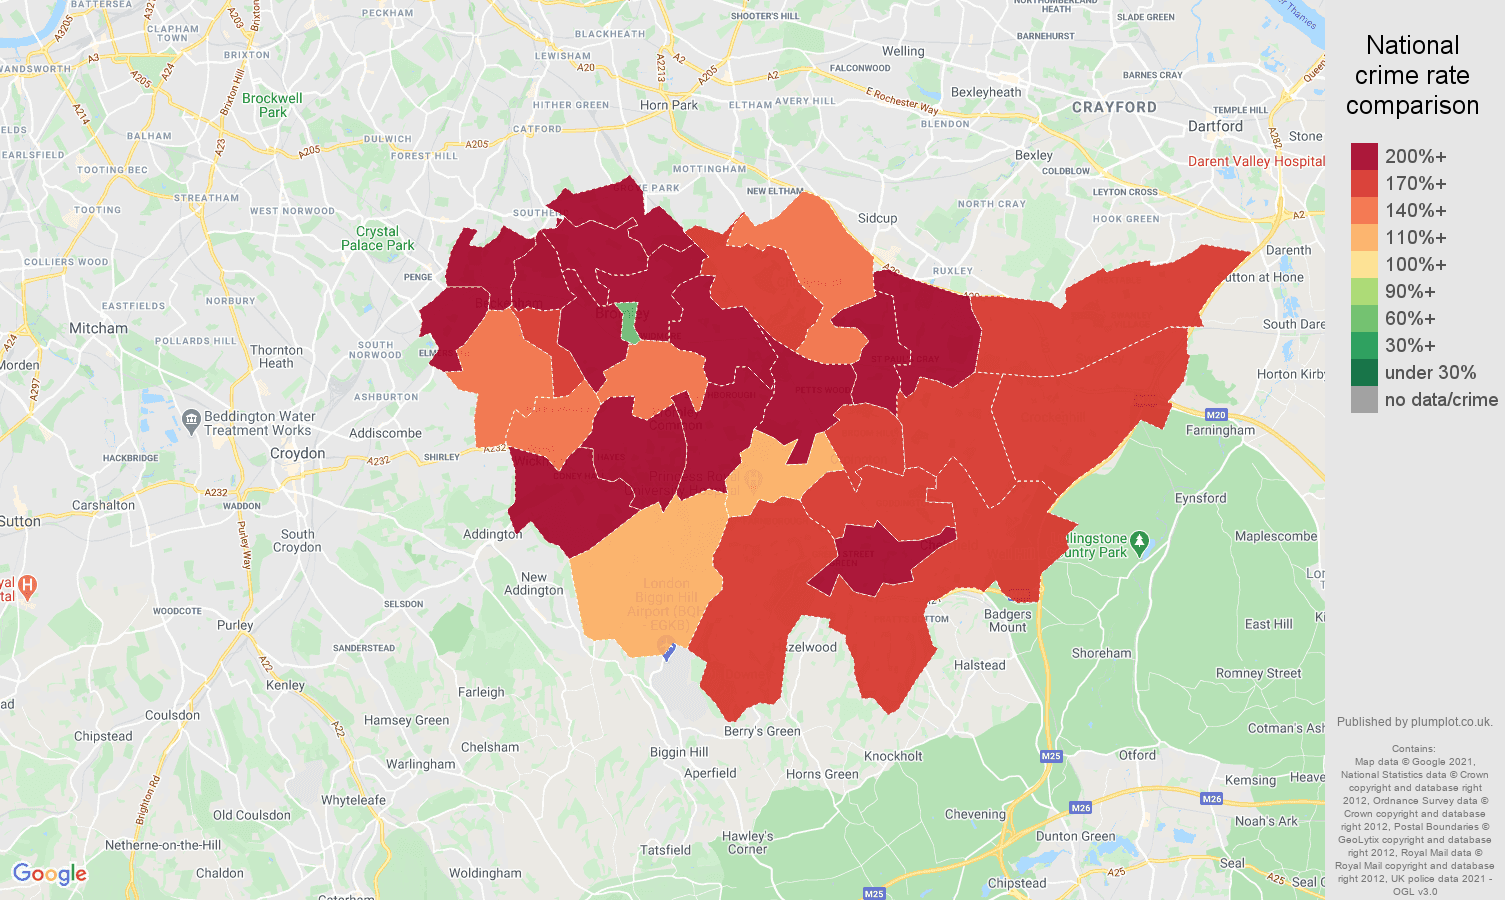 Bromley vehicle crime rate comparison map